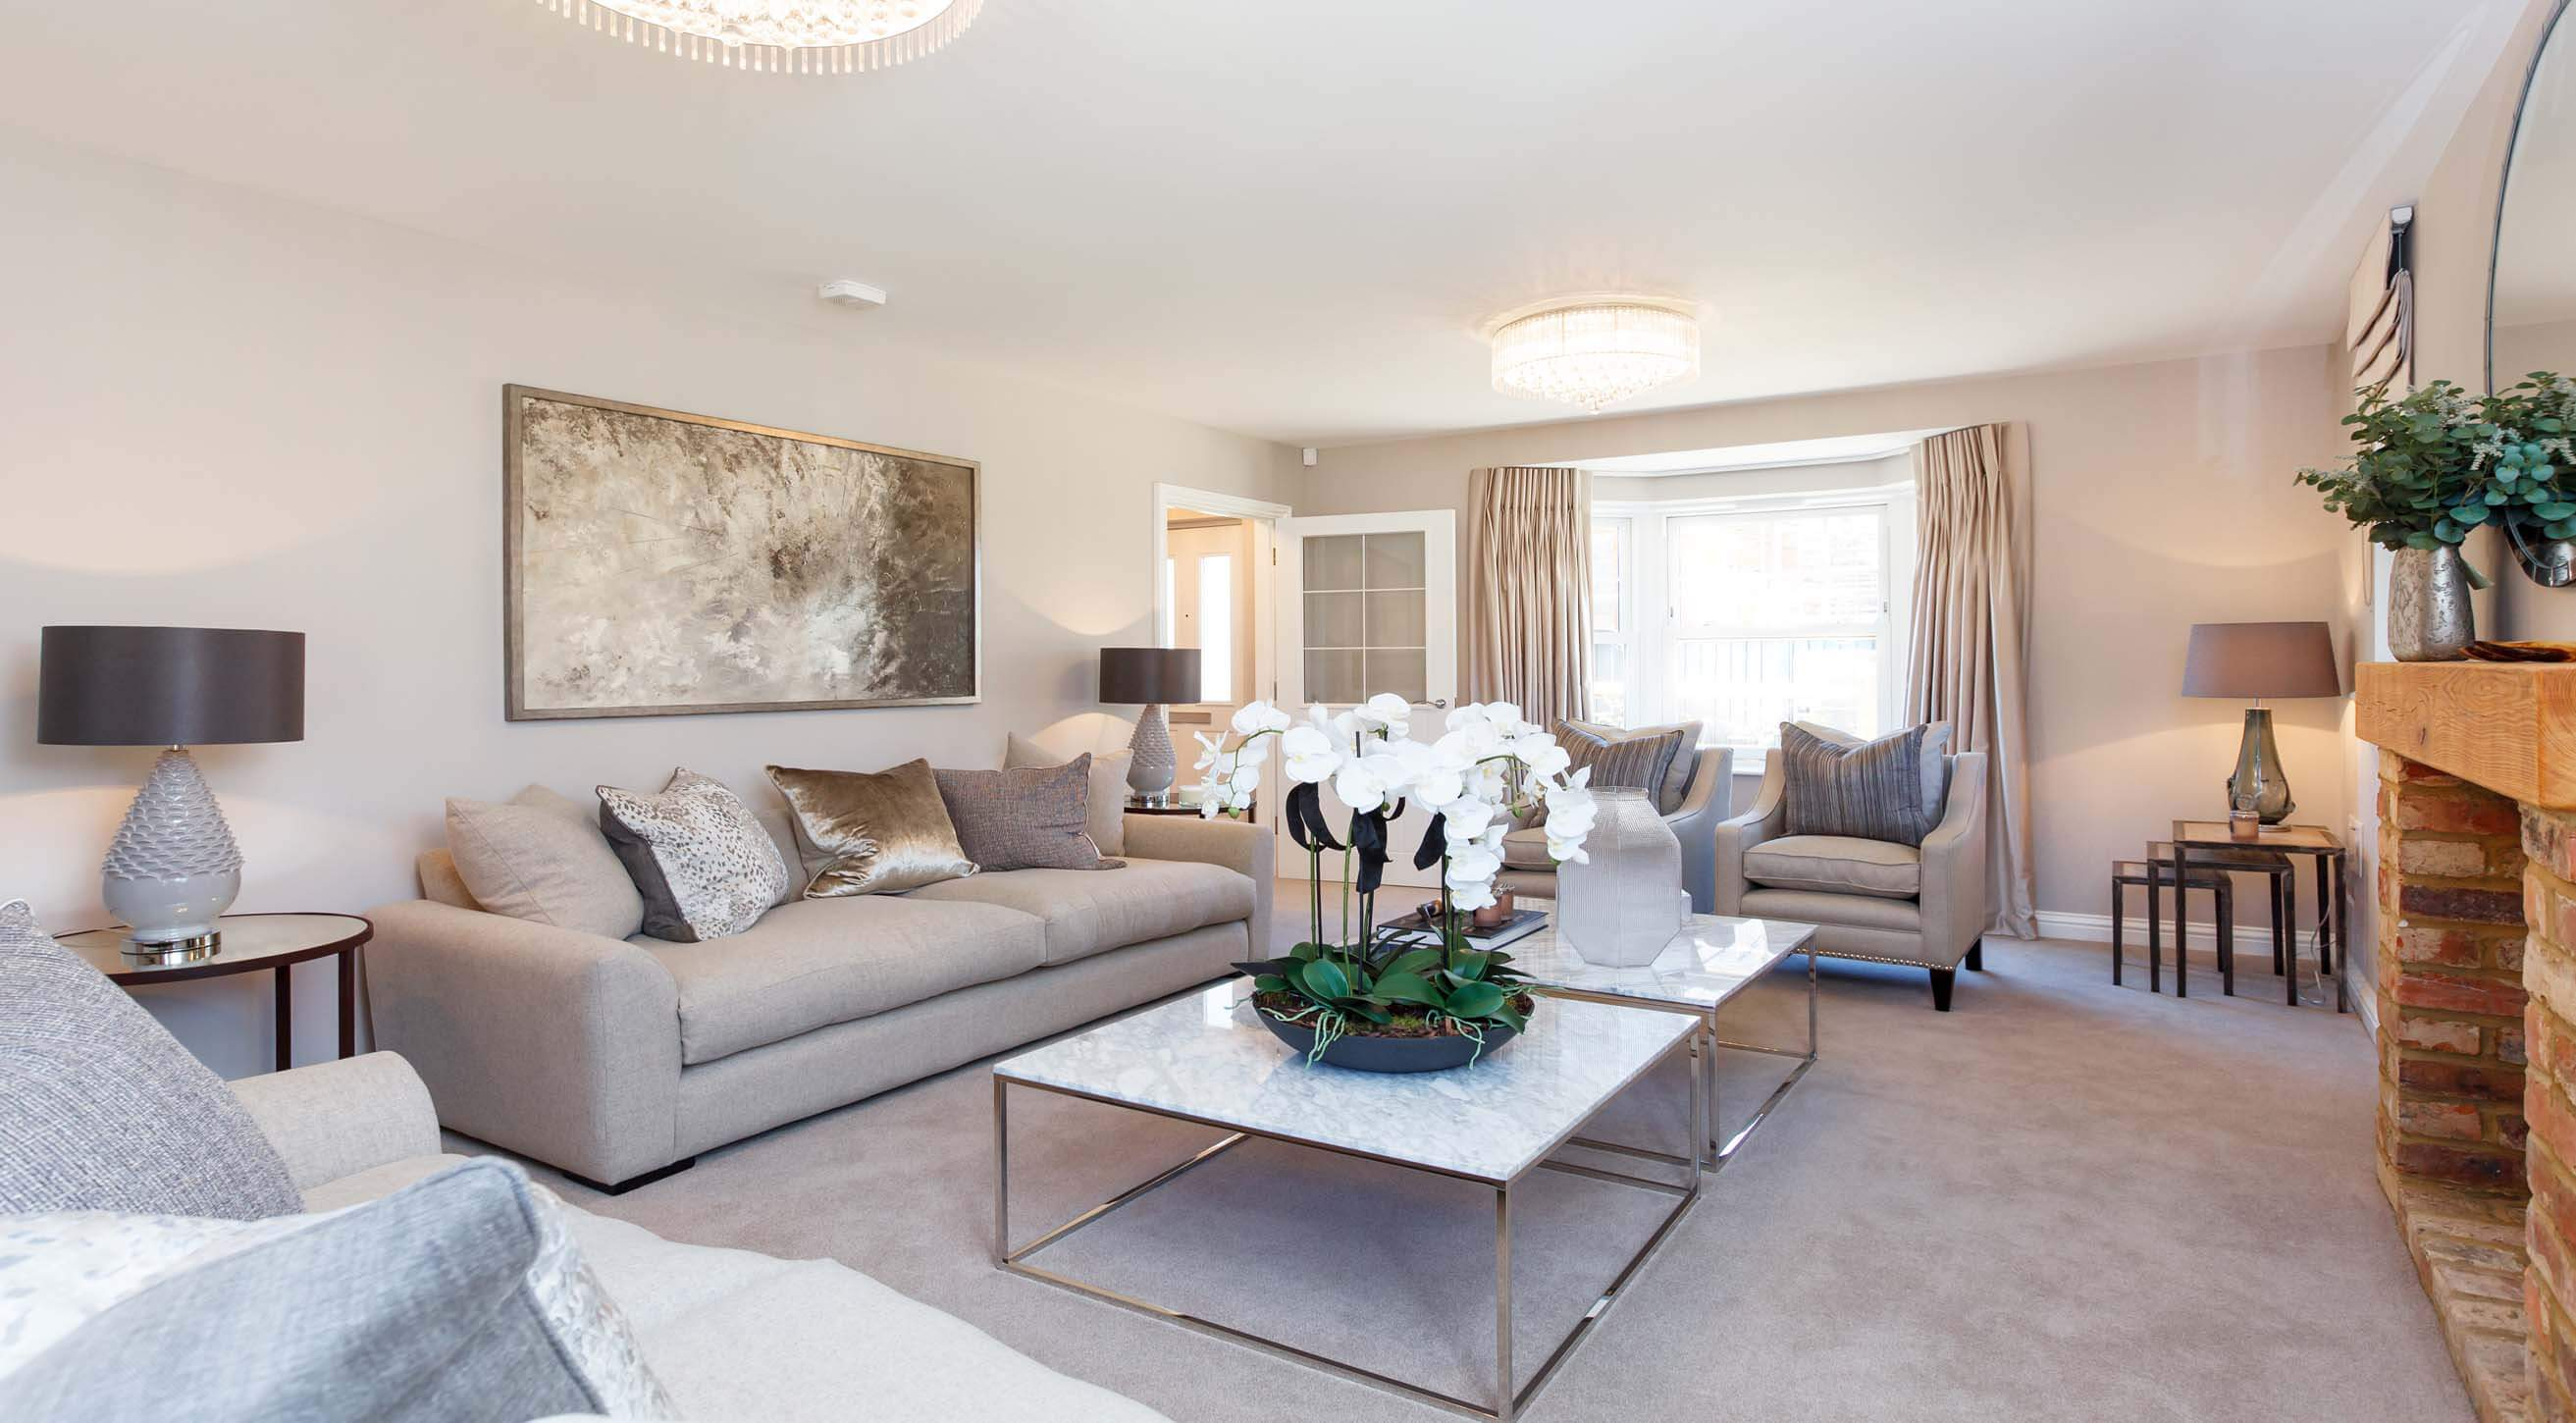 Show home room by room lavender fields isfield for Show home living room designs